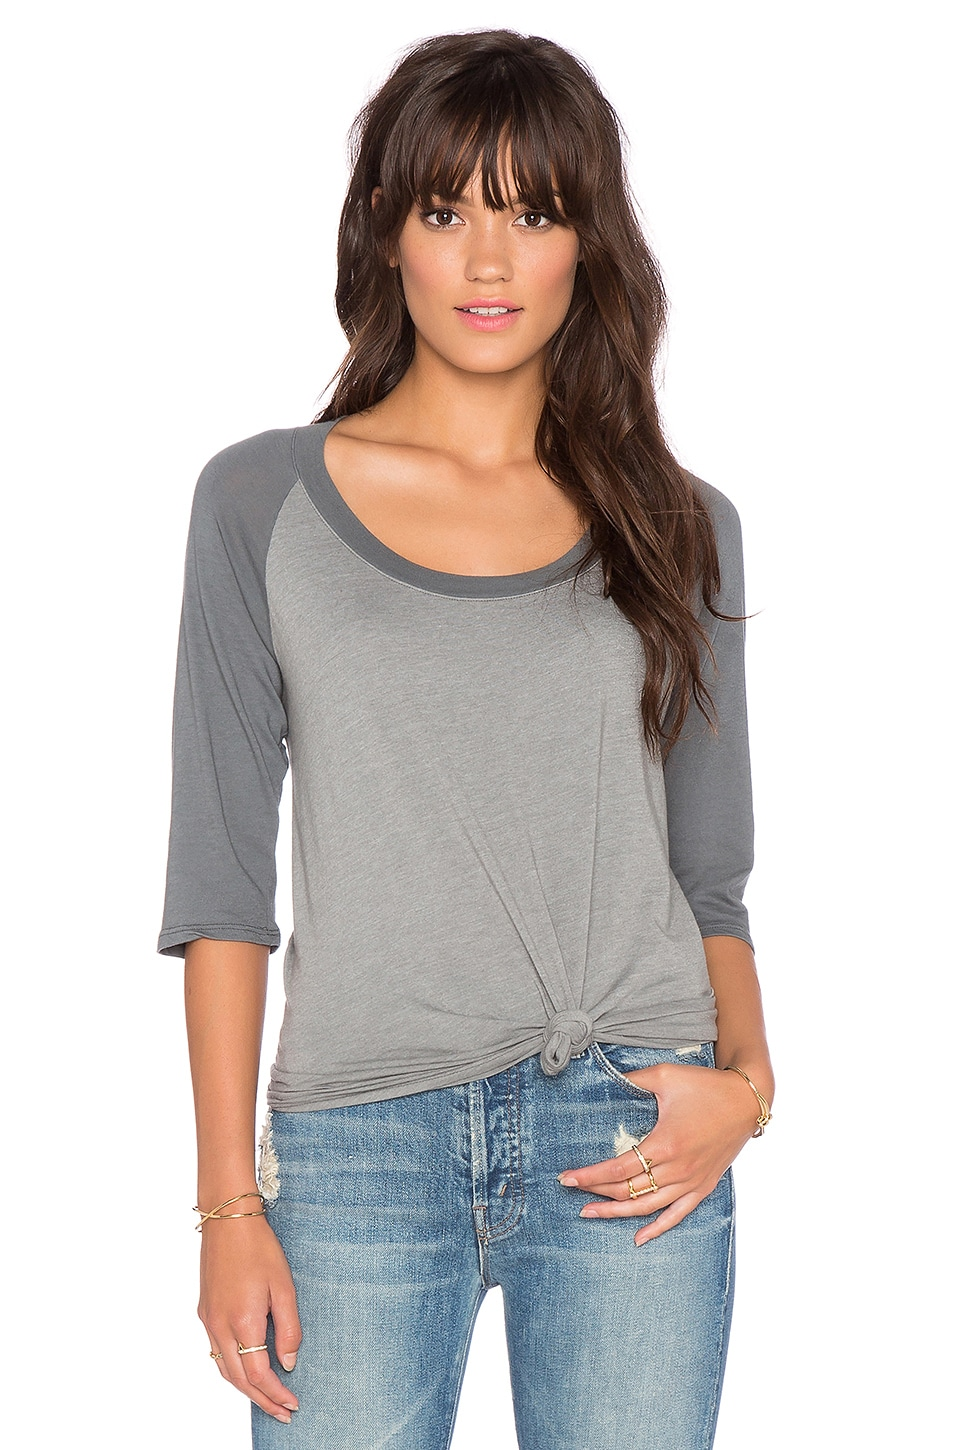 Sub_Urban RIOT Loose Baseball Tee in Faded Grey